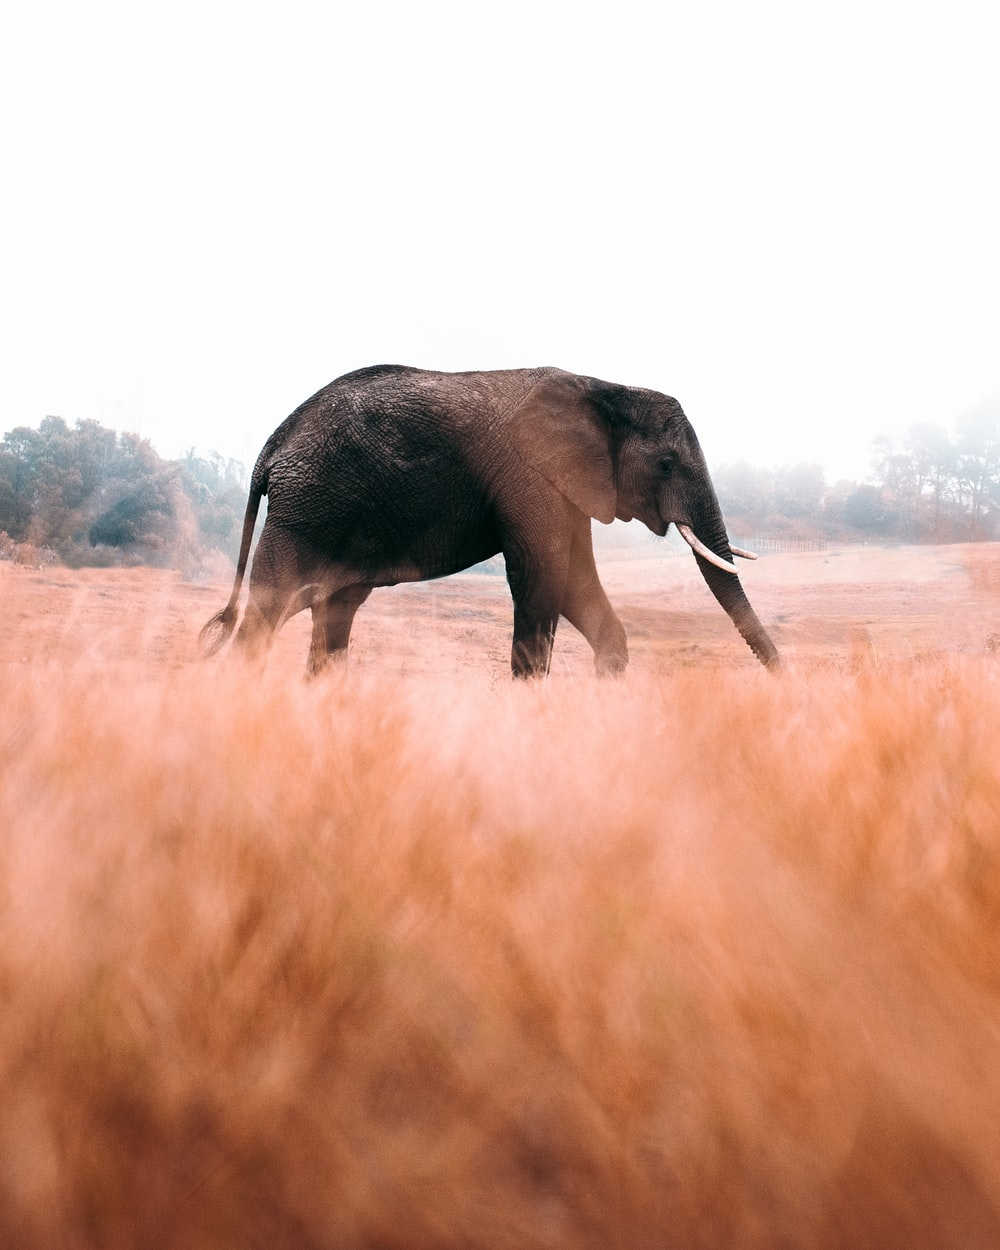 elephant walking on brown grass field during daytime